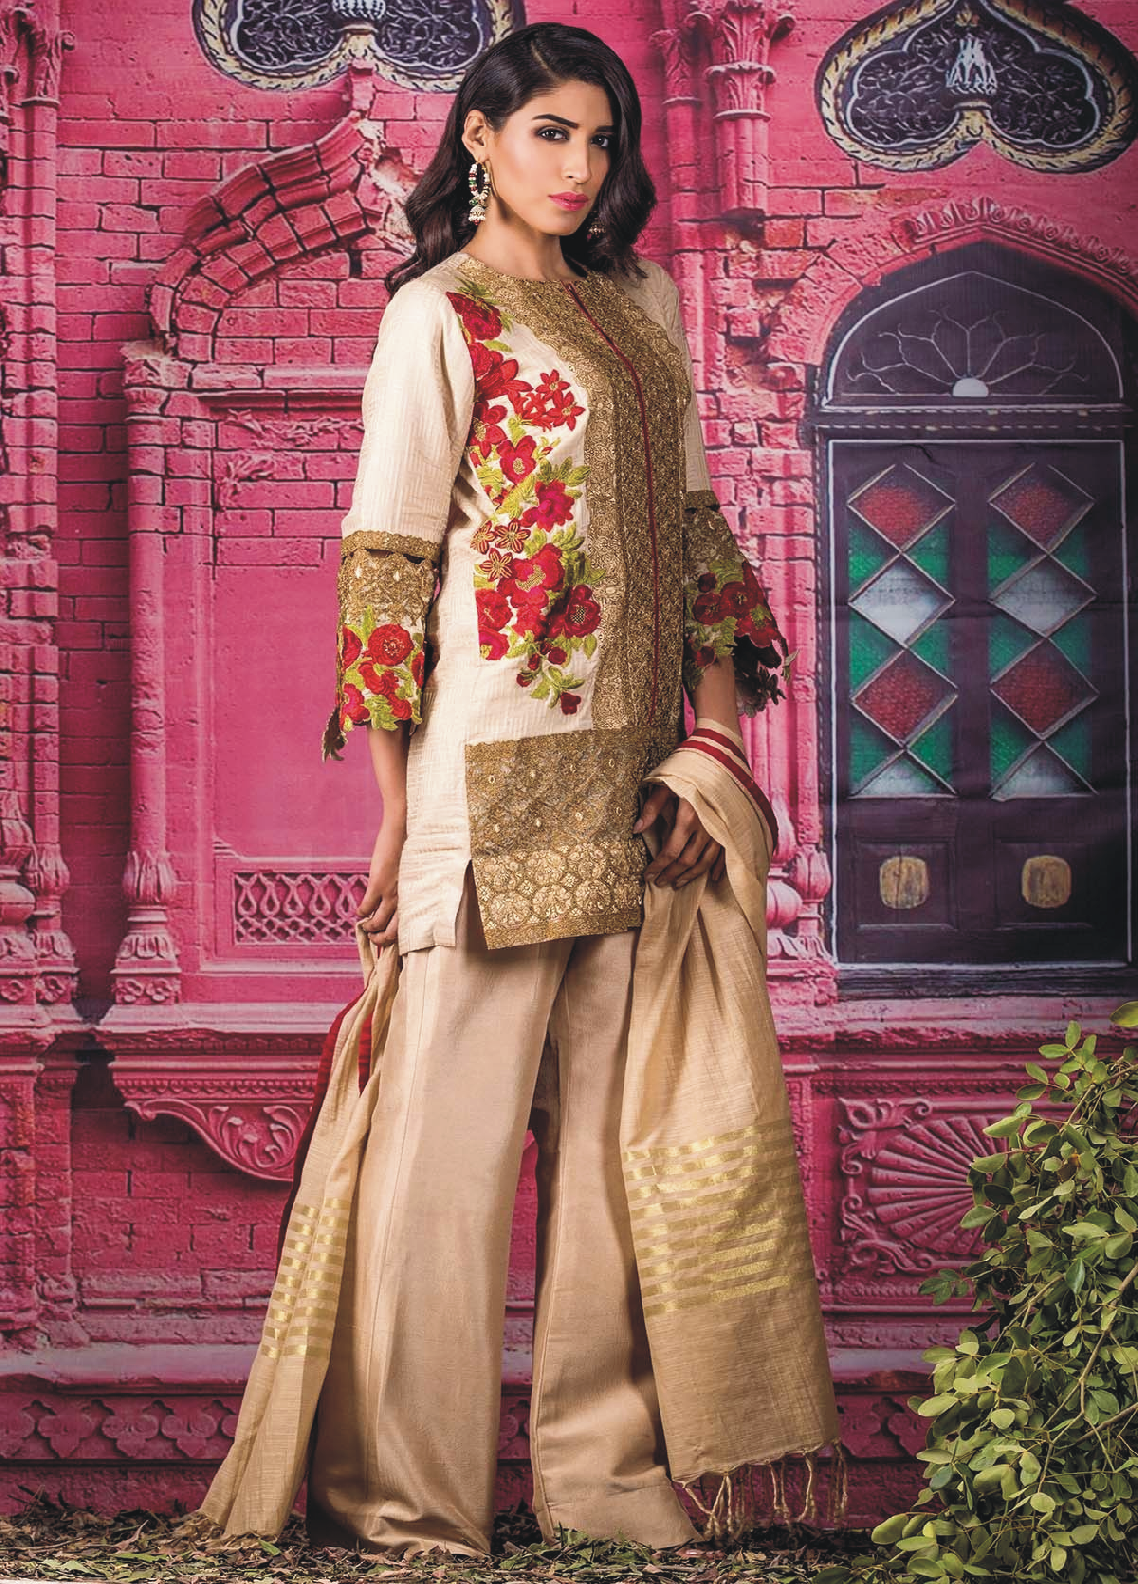 new eid collection 2019, eid dresses 2019, eid dresses online shopping, eid clothes latest collection, pakistani eid dresses 2019, eid special dress 2019, eid dresses for girl 2019, eid dresses for girl 2019, eid collection 2019 pakistan, pakistani eid dresses 2019, eid dresses online shopping, latest eid collection 2019, eid collection 2019 pakistan, pakistani eid dresses 2019, eid collection 2019 india, eid collection 2019 khaadi